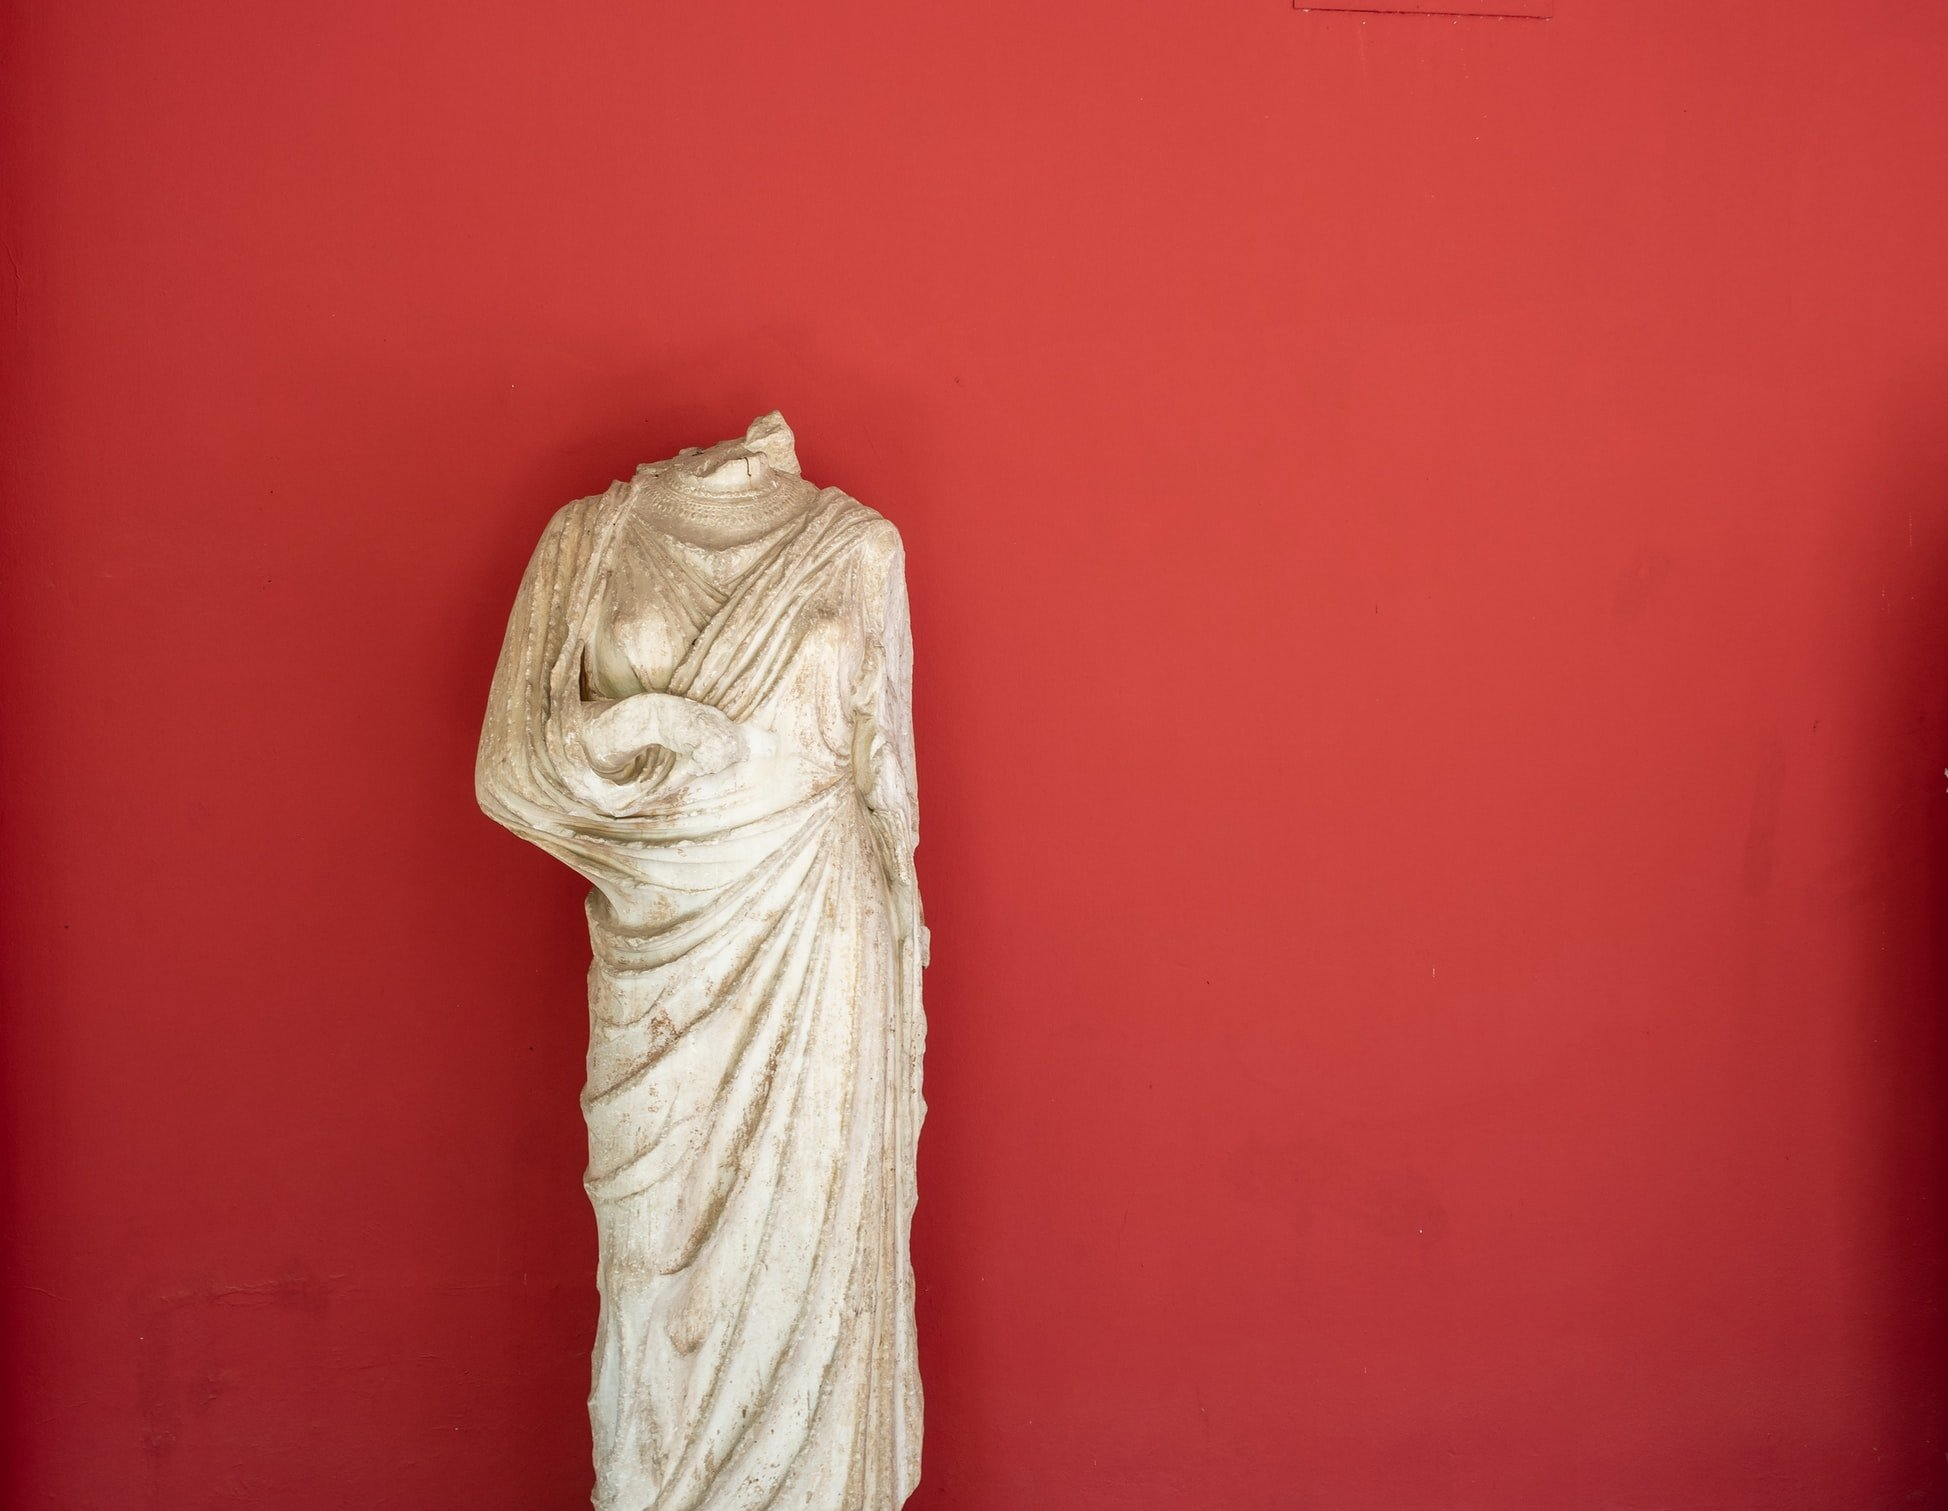 National Archaeological Museum, Greece